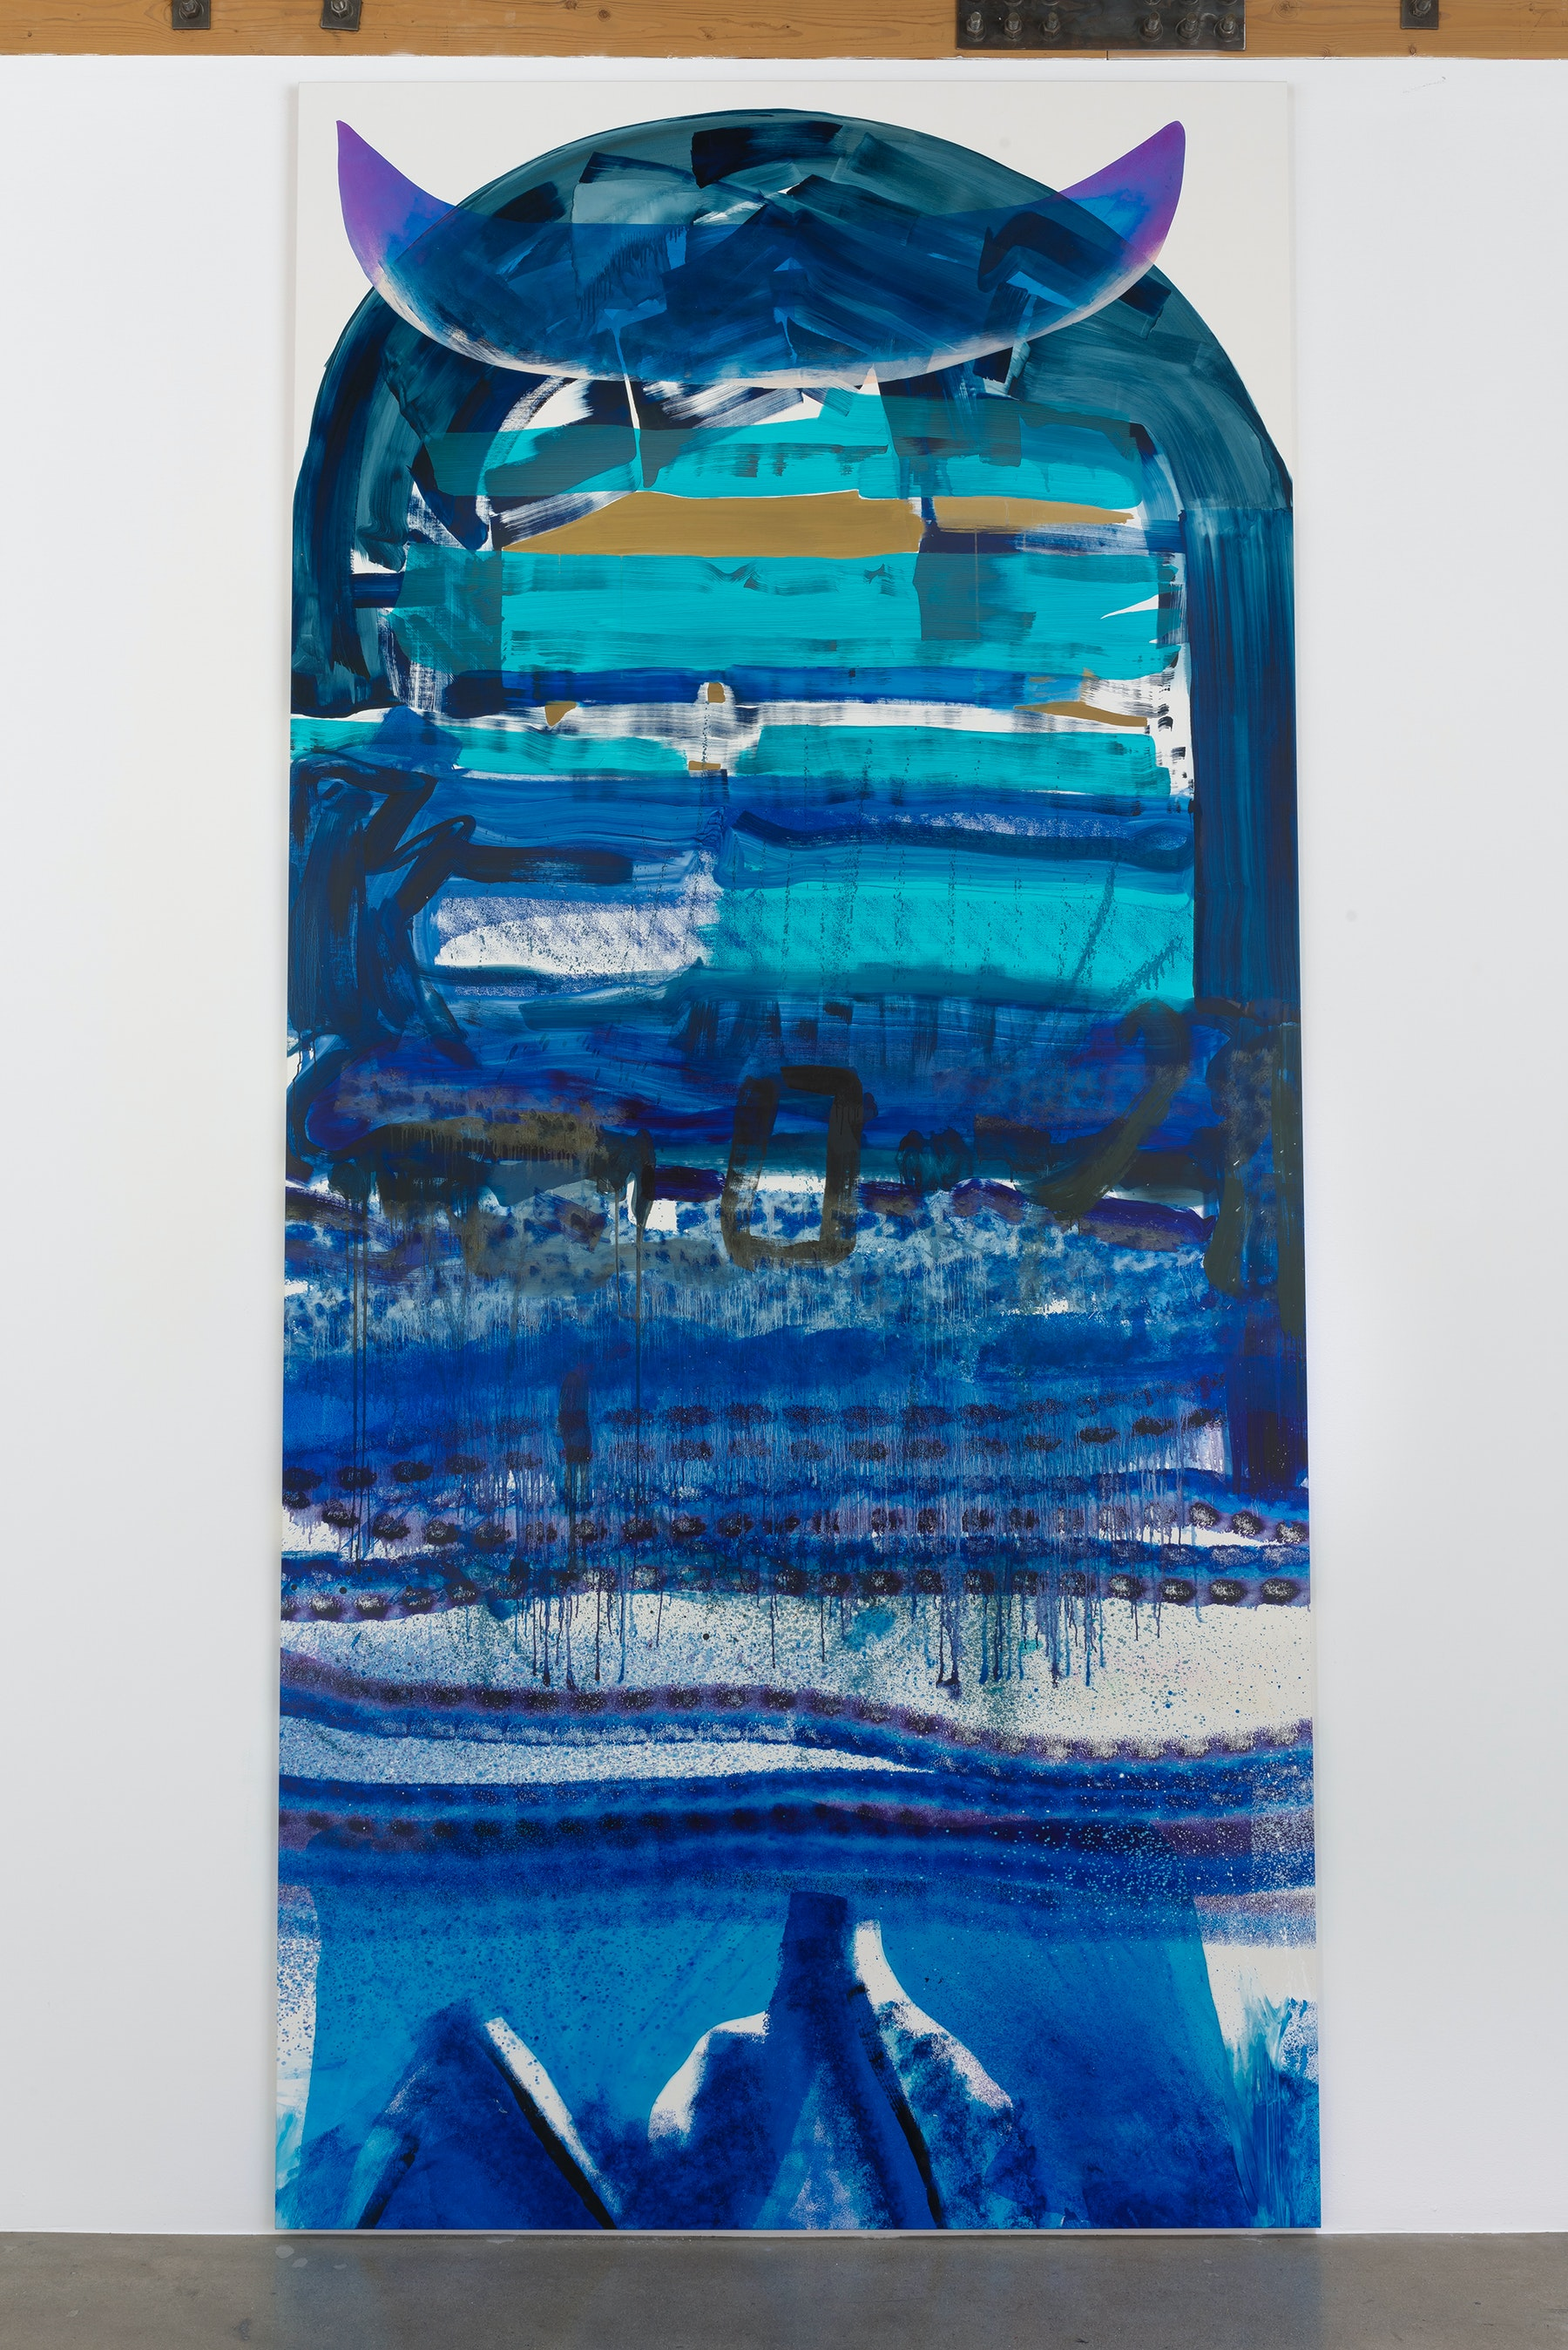 """Monique Van Genderen """"Untitled,"""" 2017 Oil and pigment on linen 13' 9"""" x 78"""" x 1 ¹⁄₄"""" [HxWxD] (419.1 x 198.12 x 3.18 cm) Inventory #VGE336 Courtesy of the artist and Vielmetter Los Angeles Photo credit: Robert Wedemeyer"""